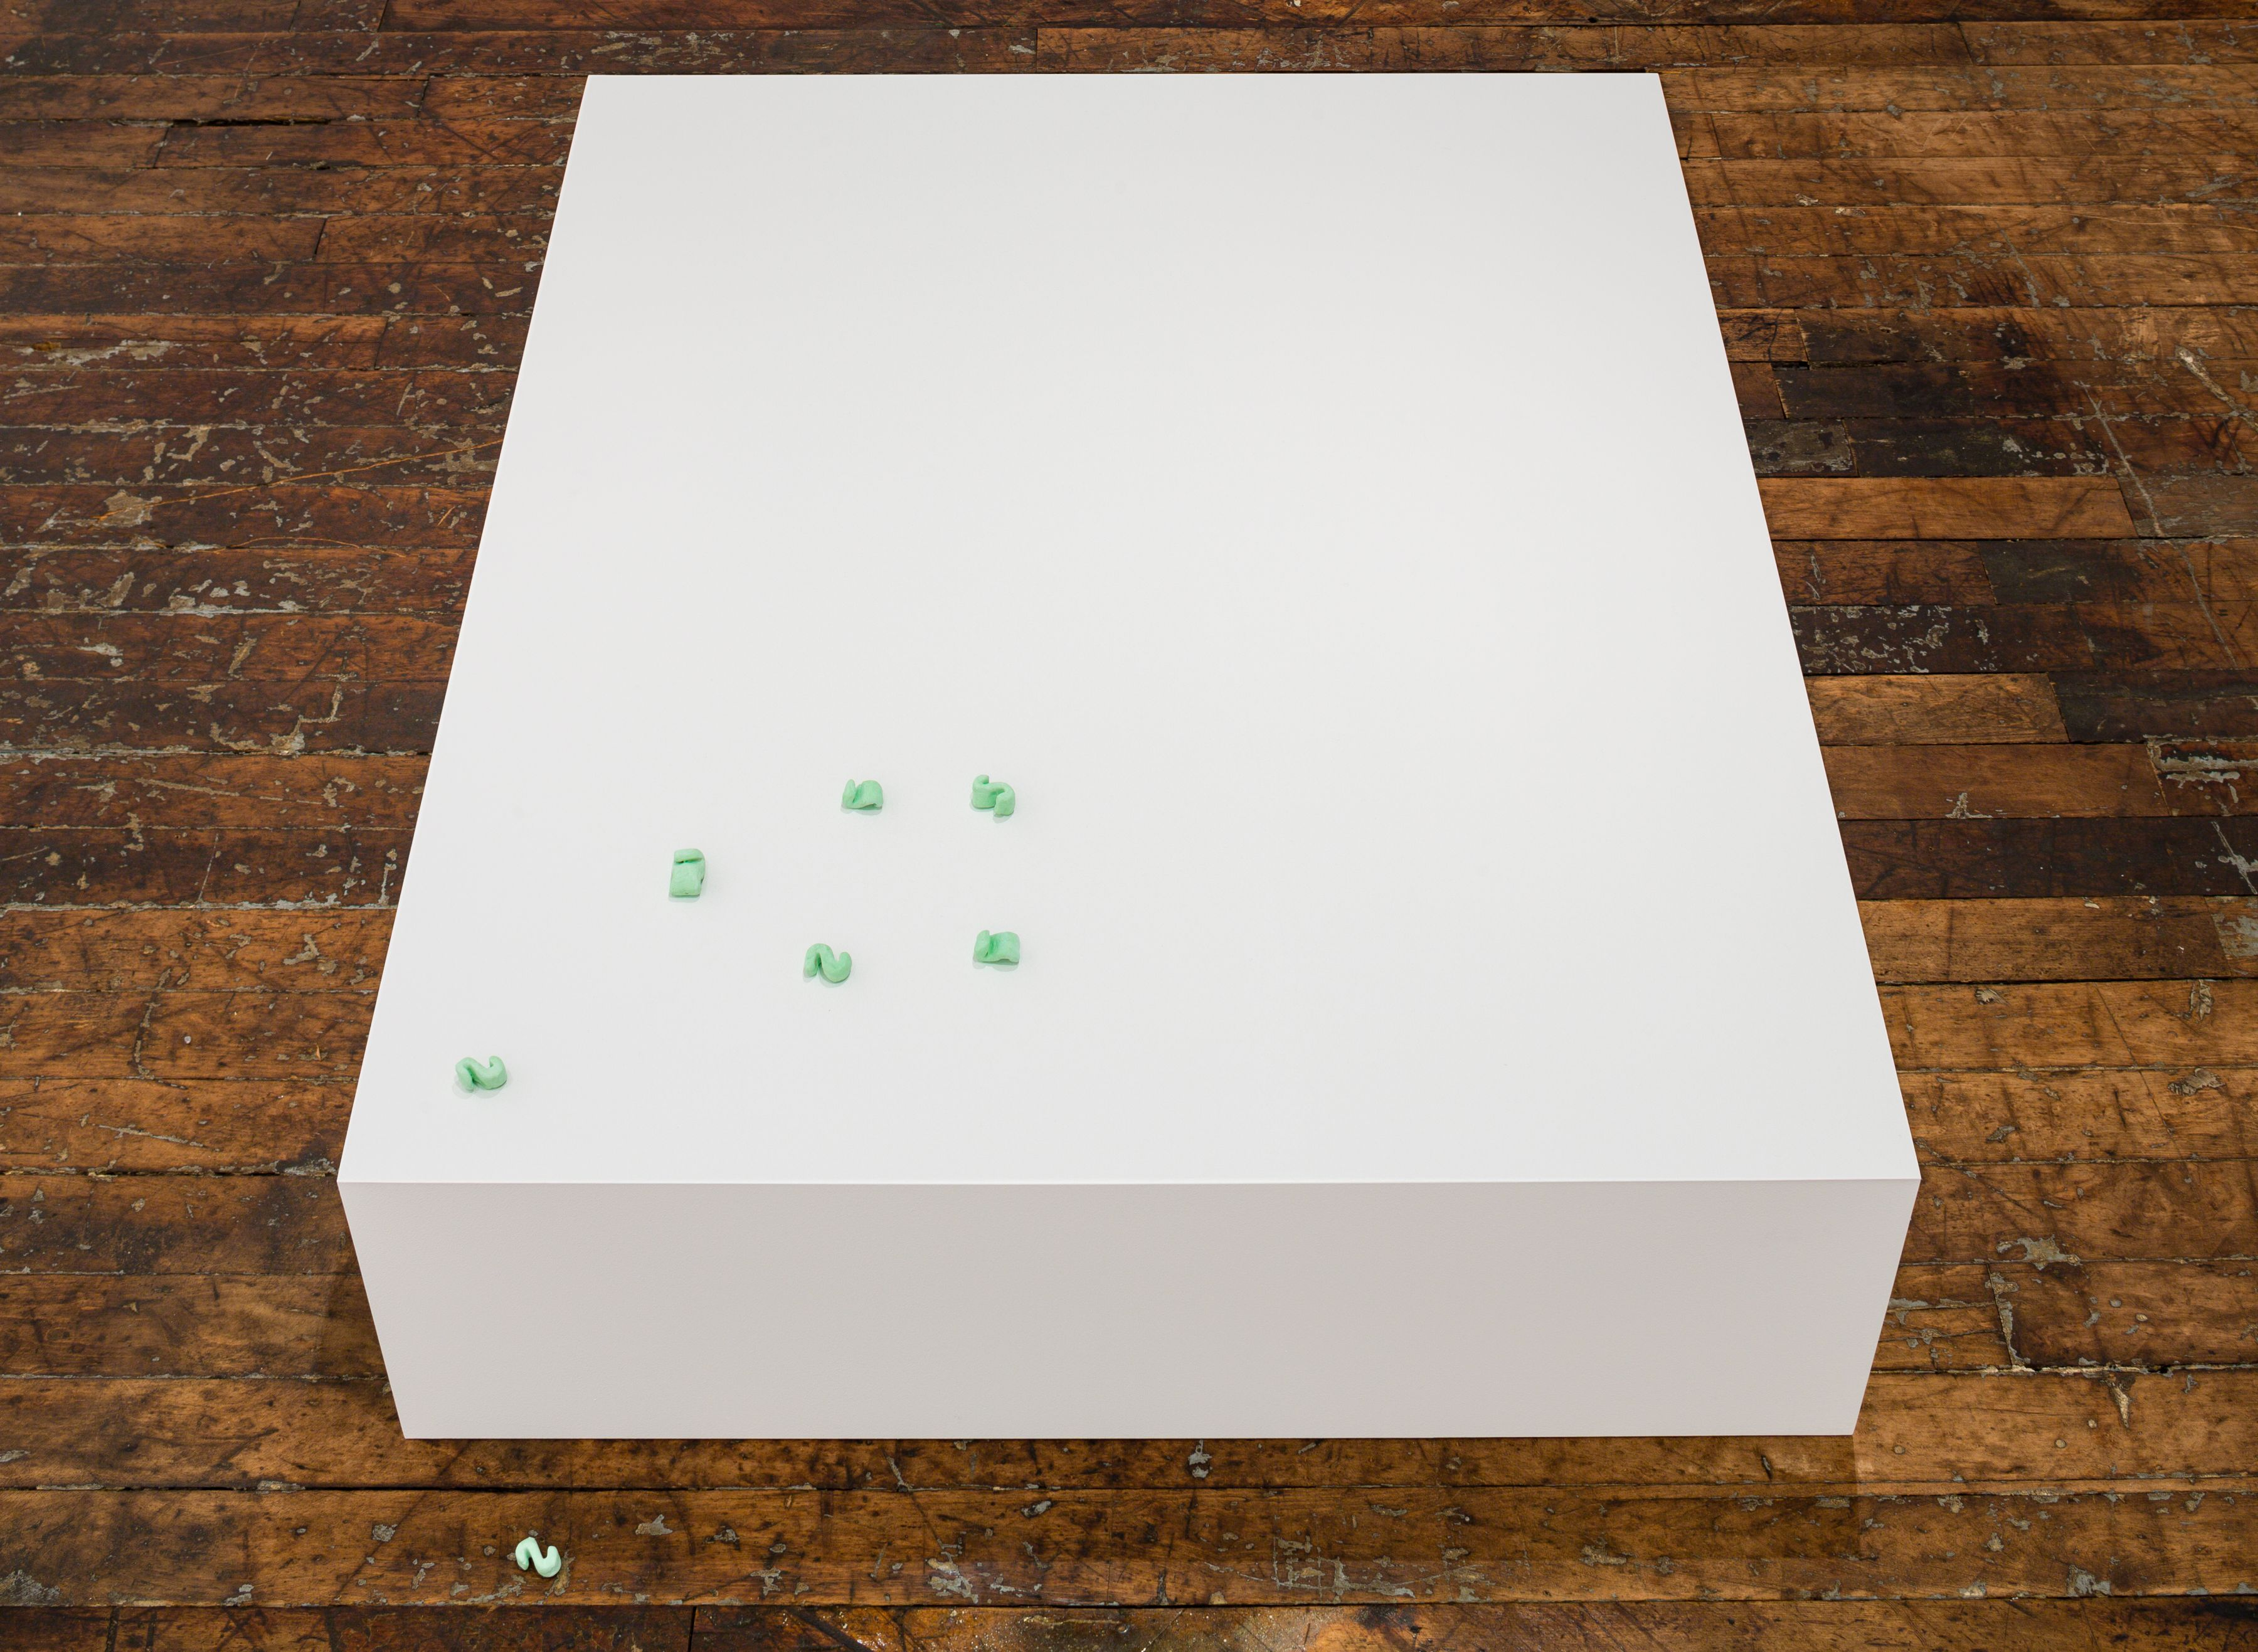 Untitled (12 packing peanuts)